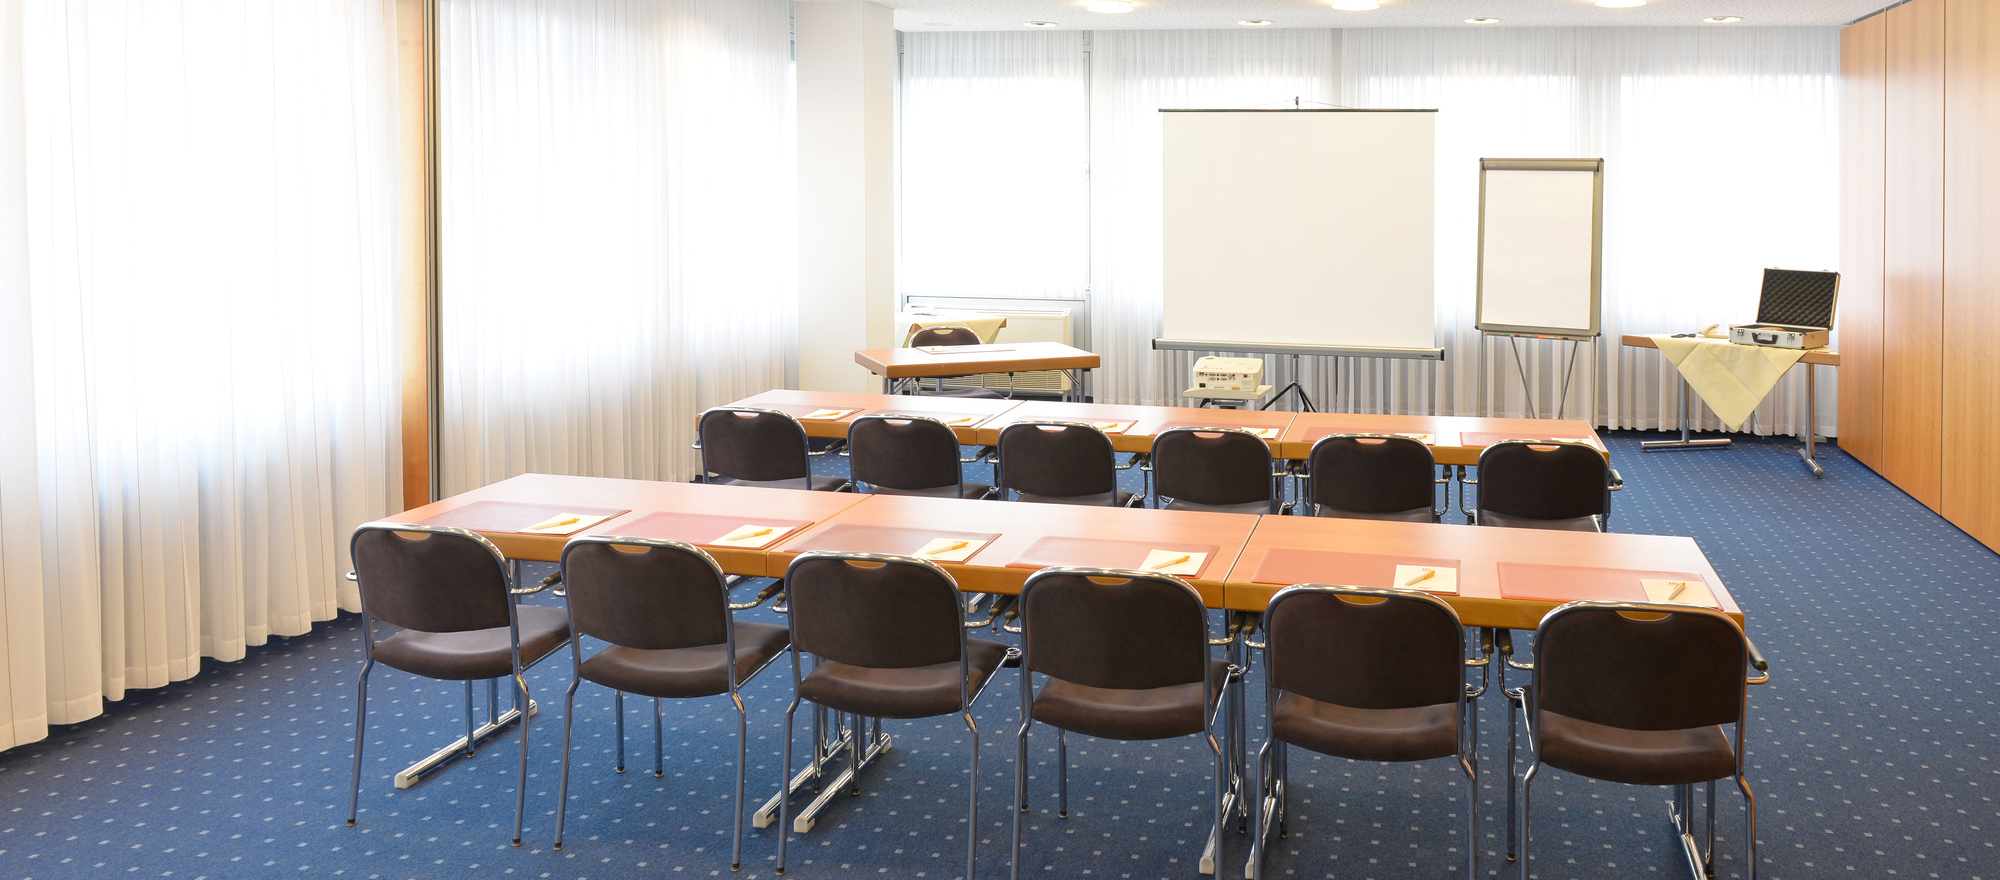 Conference room at the  Ringhotel Loew's Merkur, 4 stars Hotel in Franconia